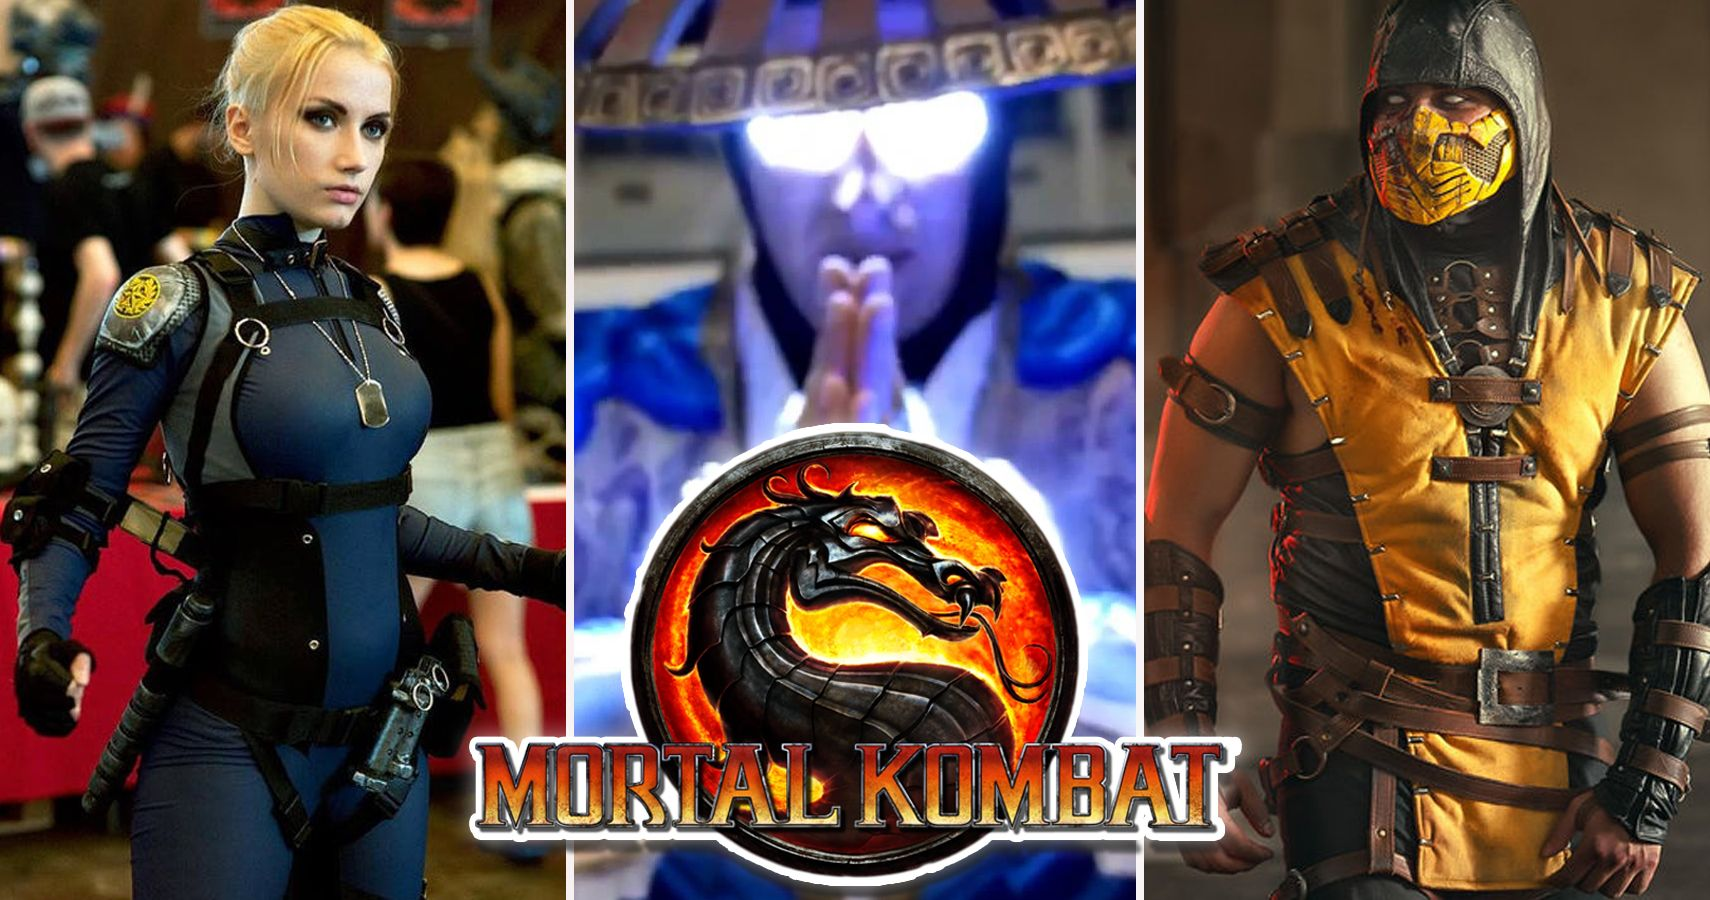 29 Mortal Kombat Characters That Are Impossible To Cosplay